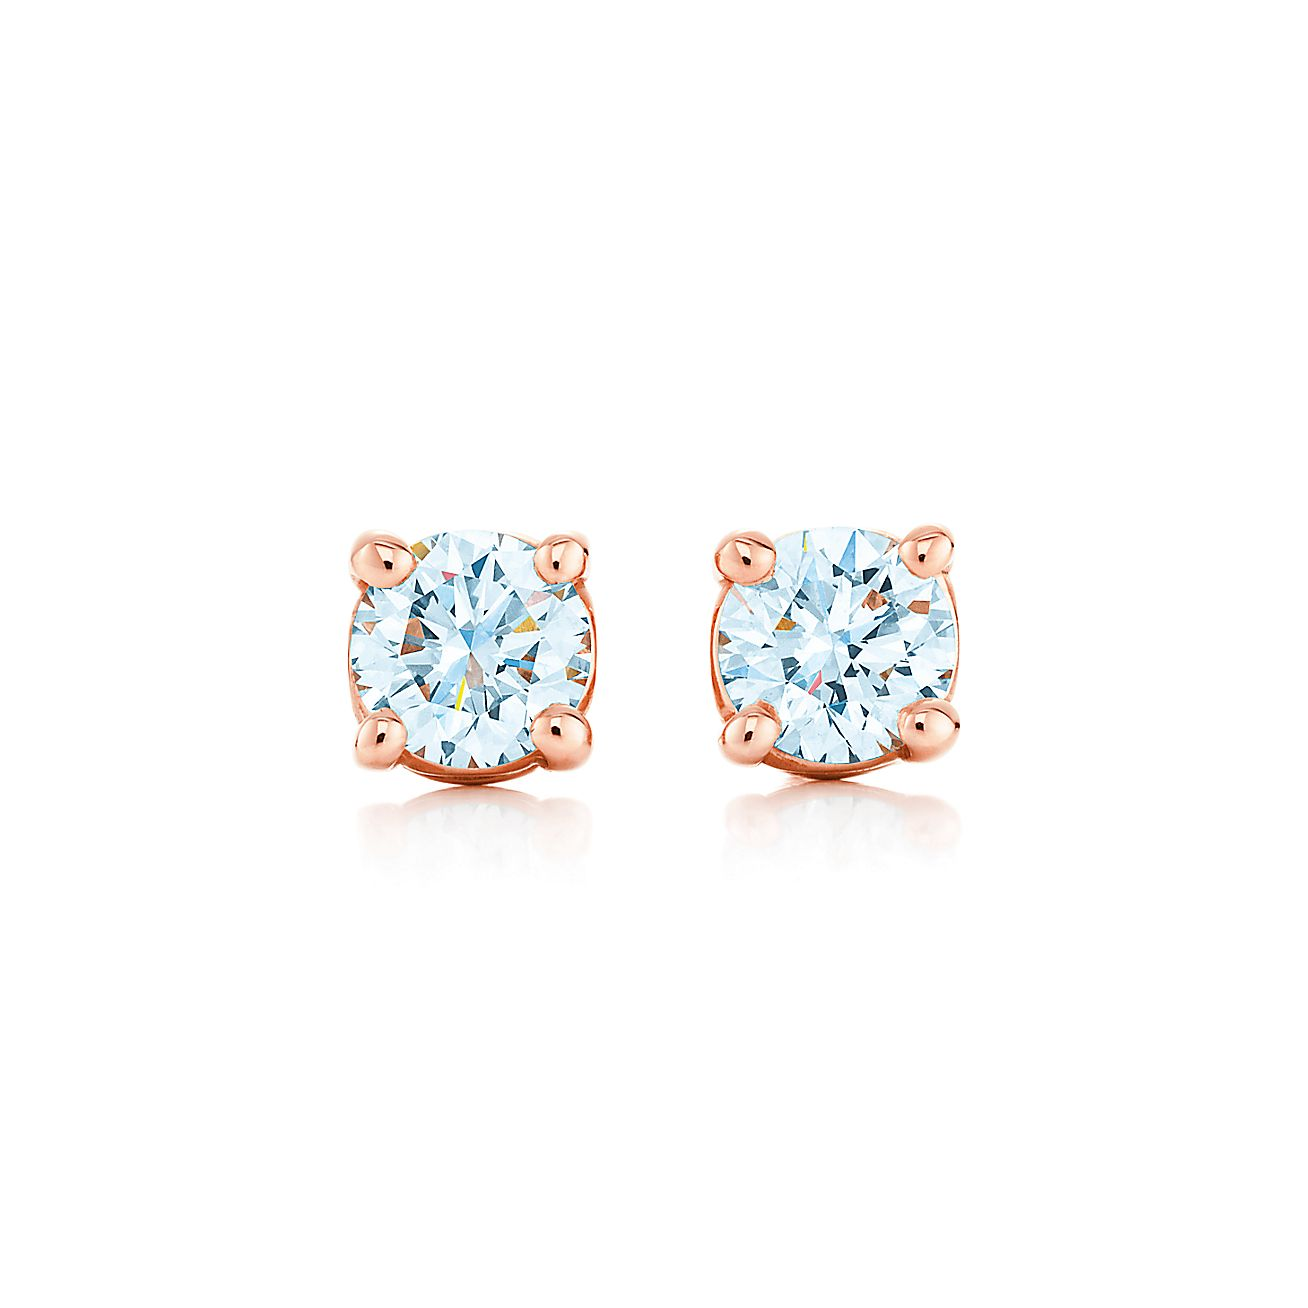 products jewellery rose gold jewelry diamond earrings nicha